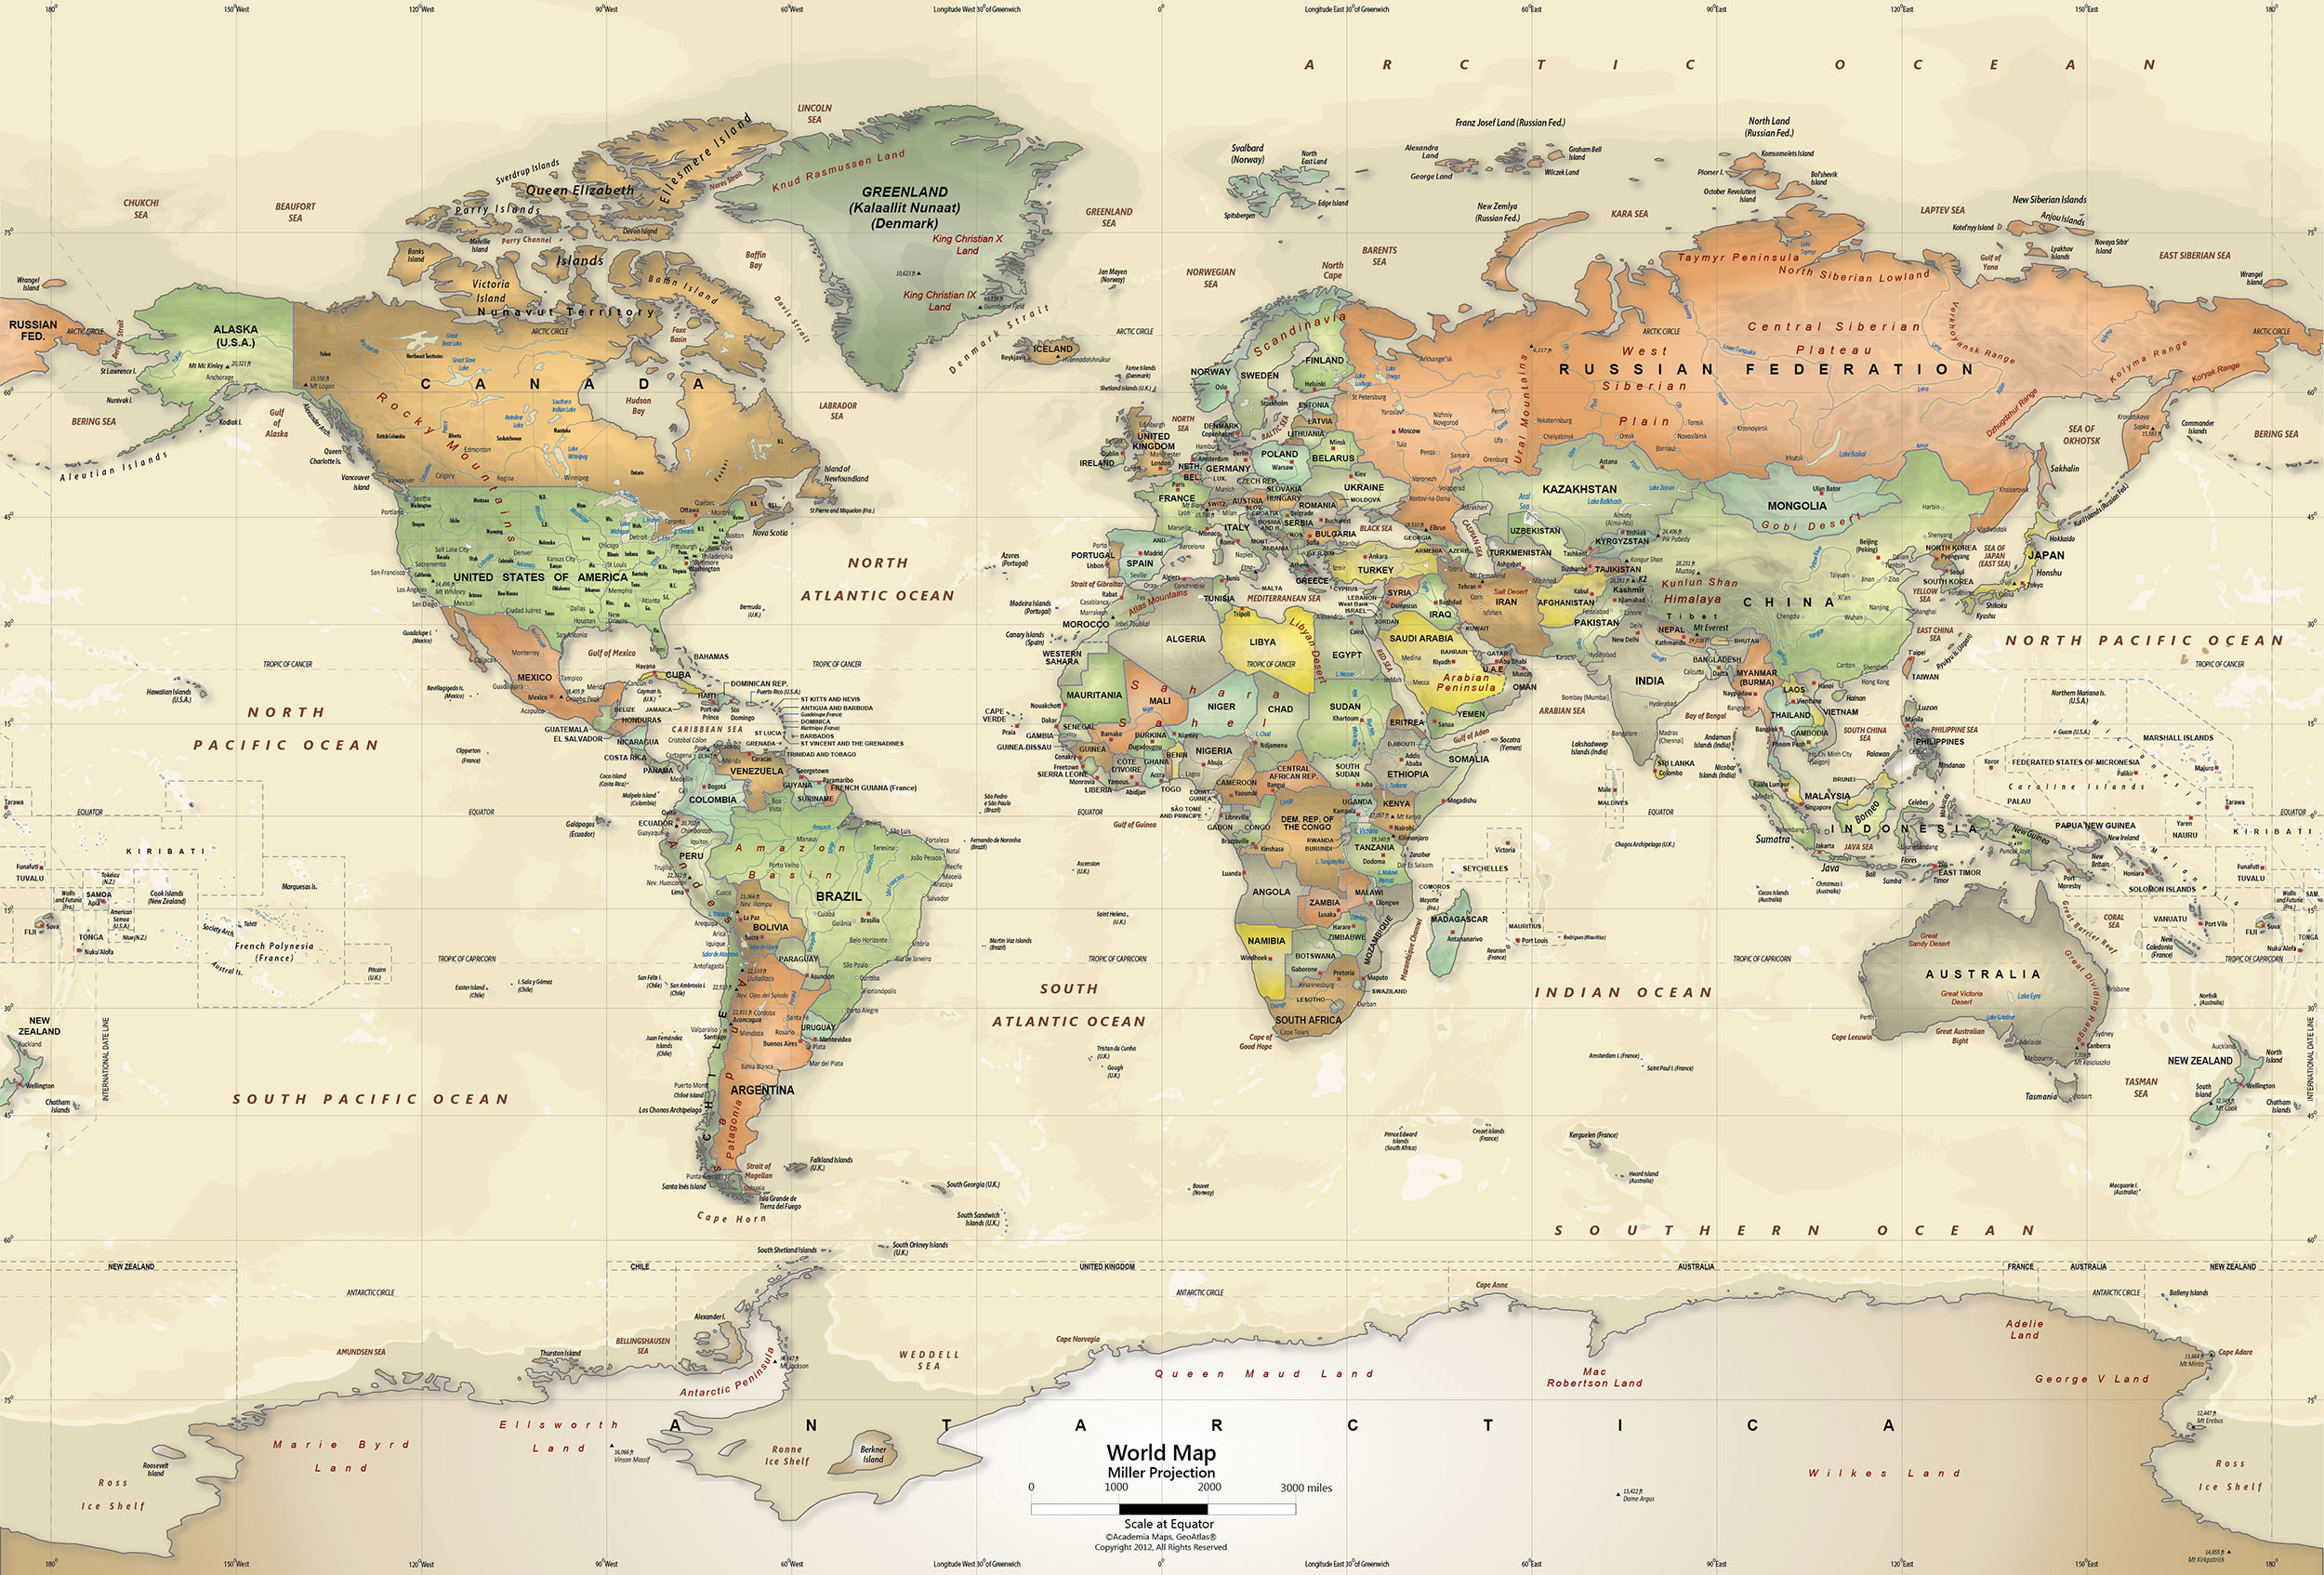 World map desktop wallpaper 54 images 1920x1080 computer digital world map wallpapers desktop background gumiabroncs Choice Image